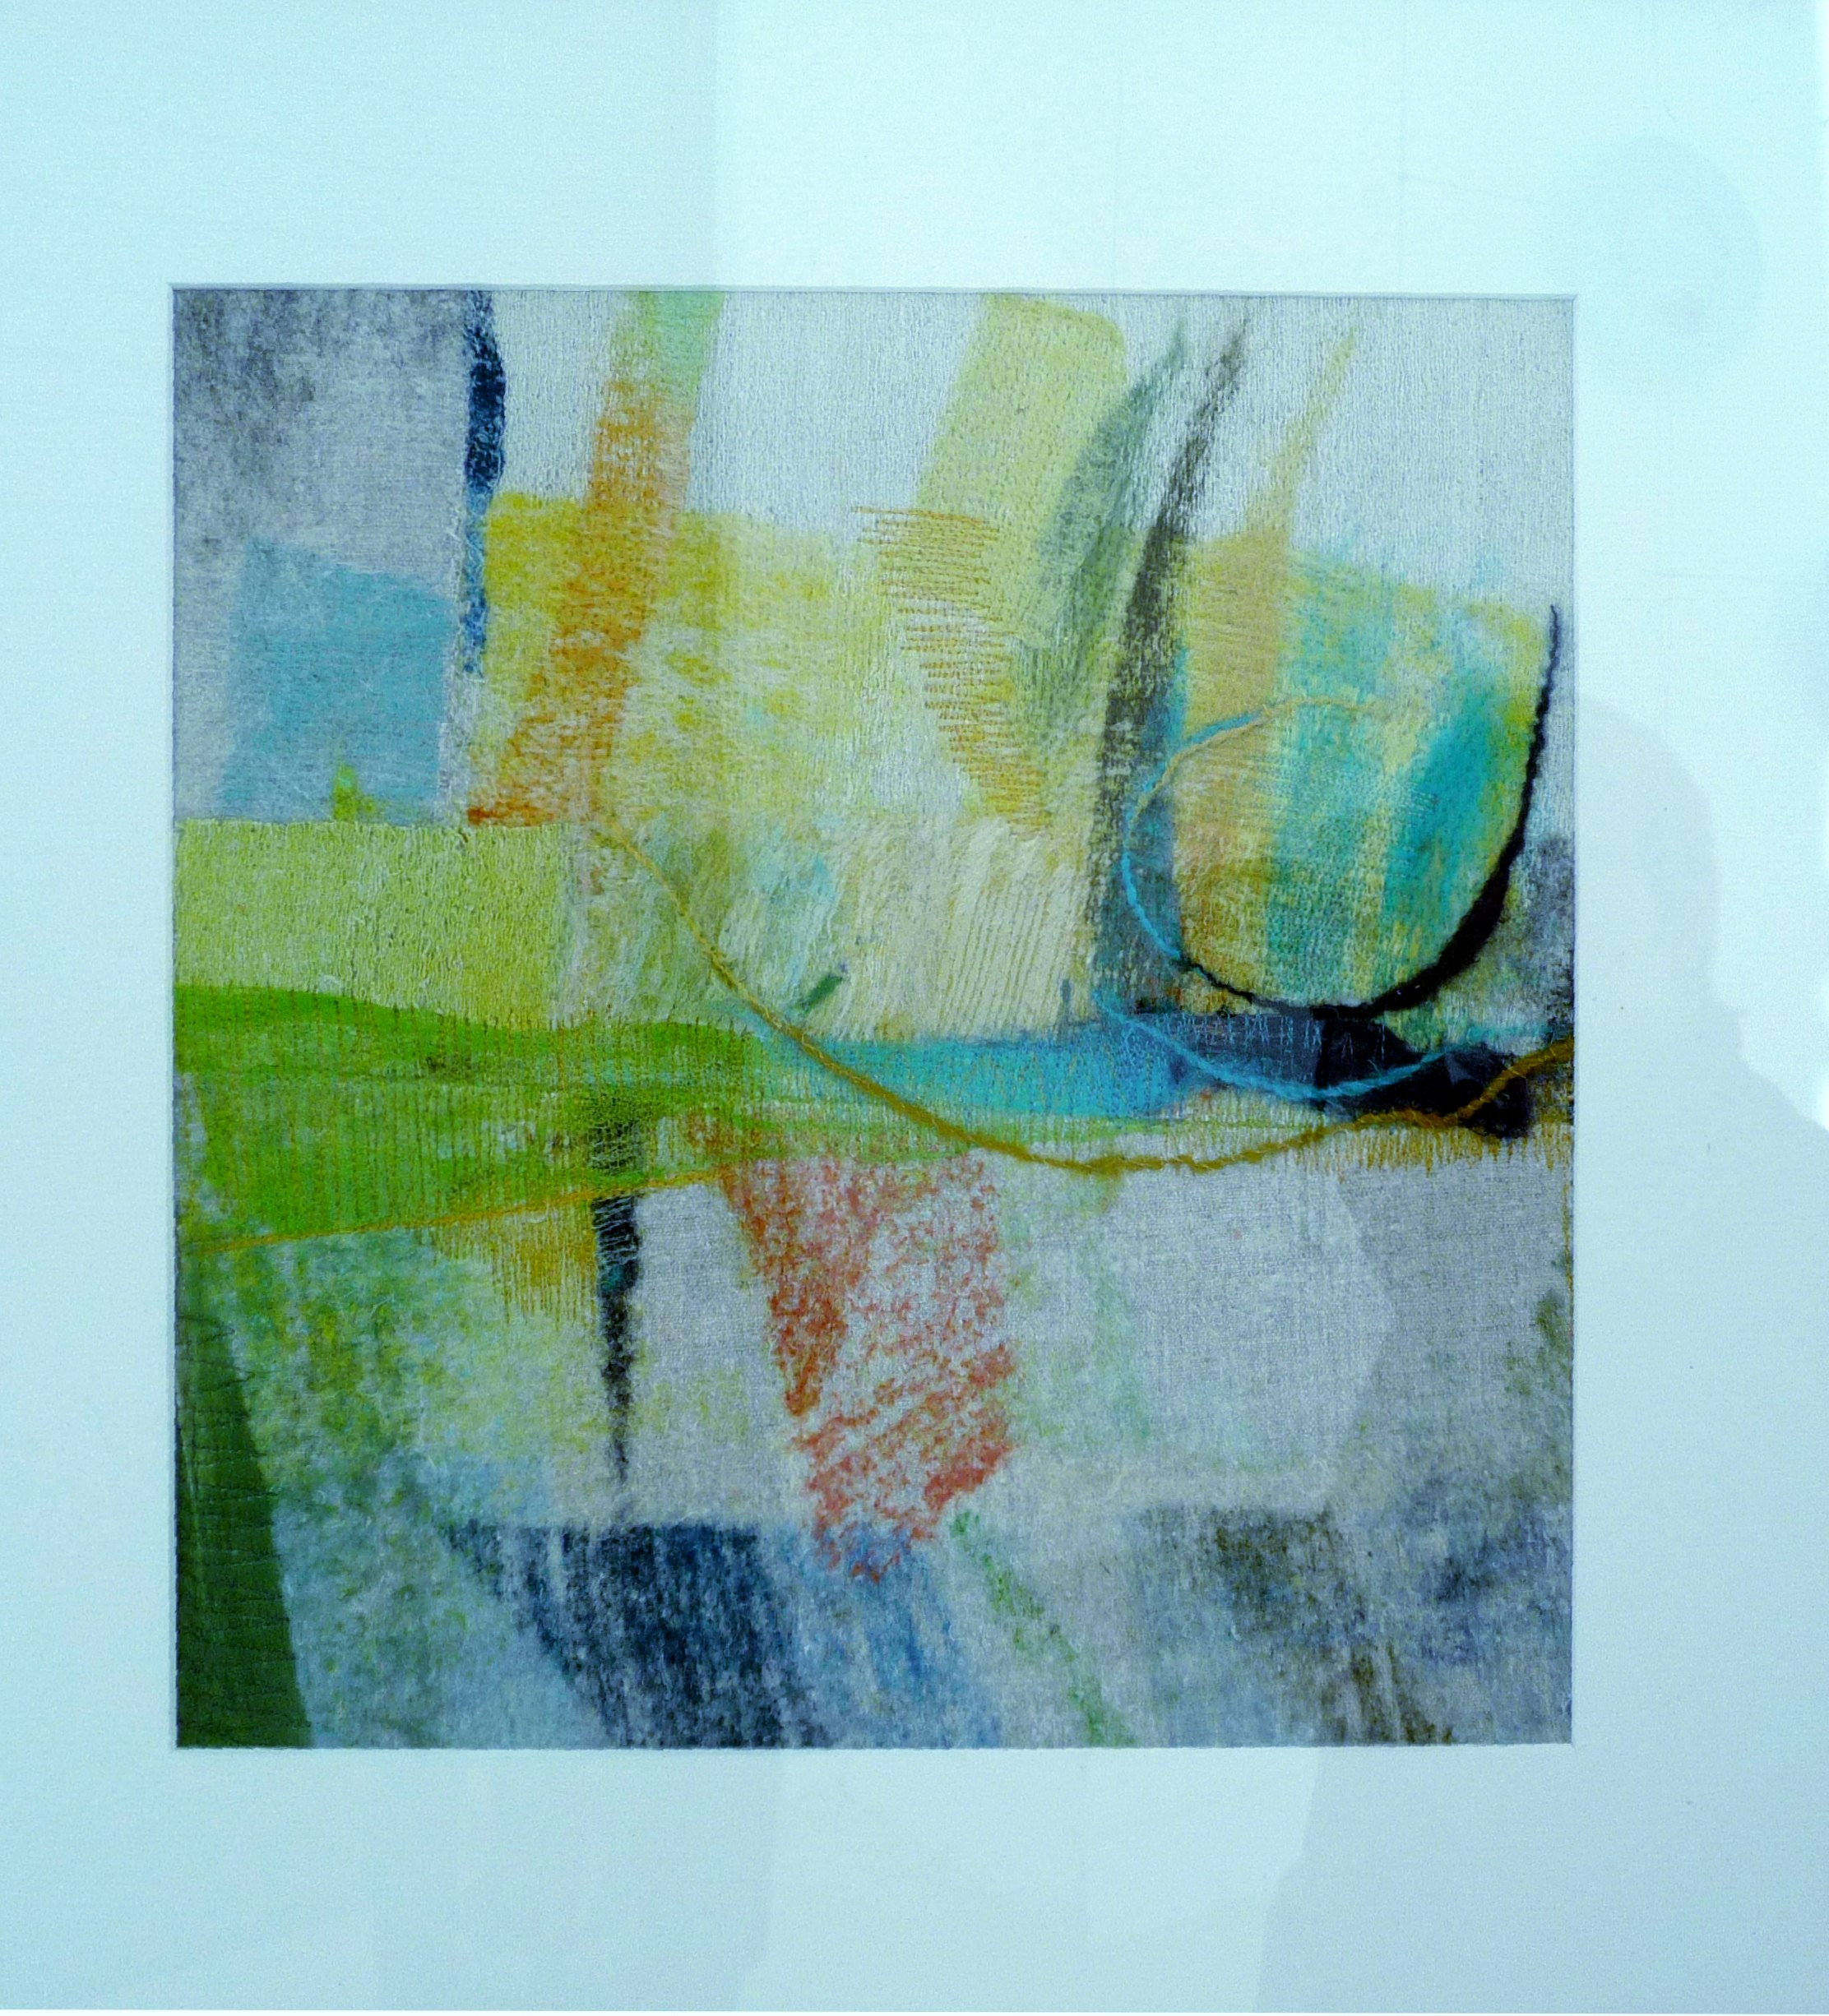 ABSTRACT by Marion Roberts, felt/stitch